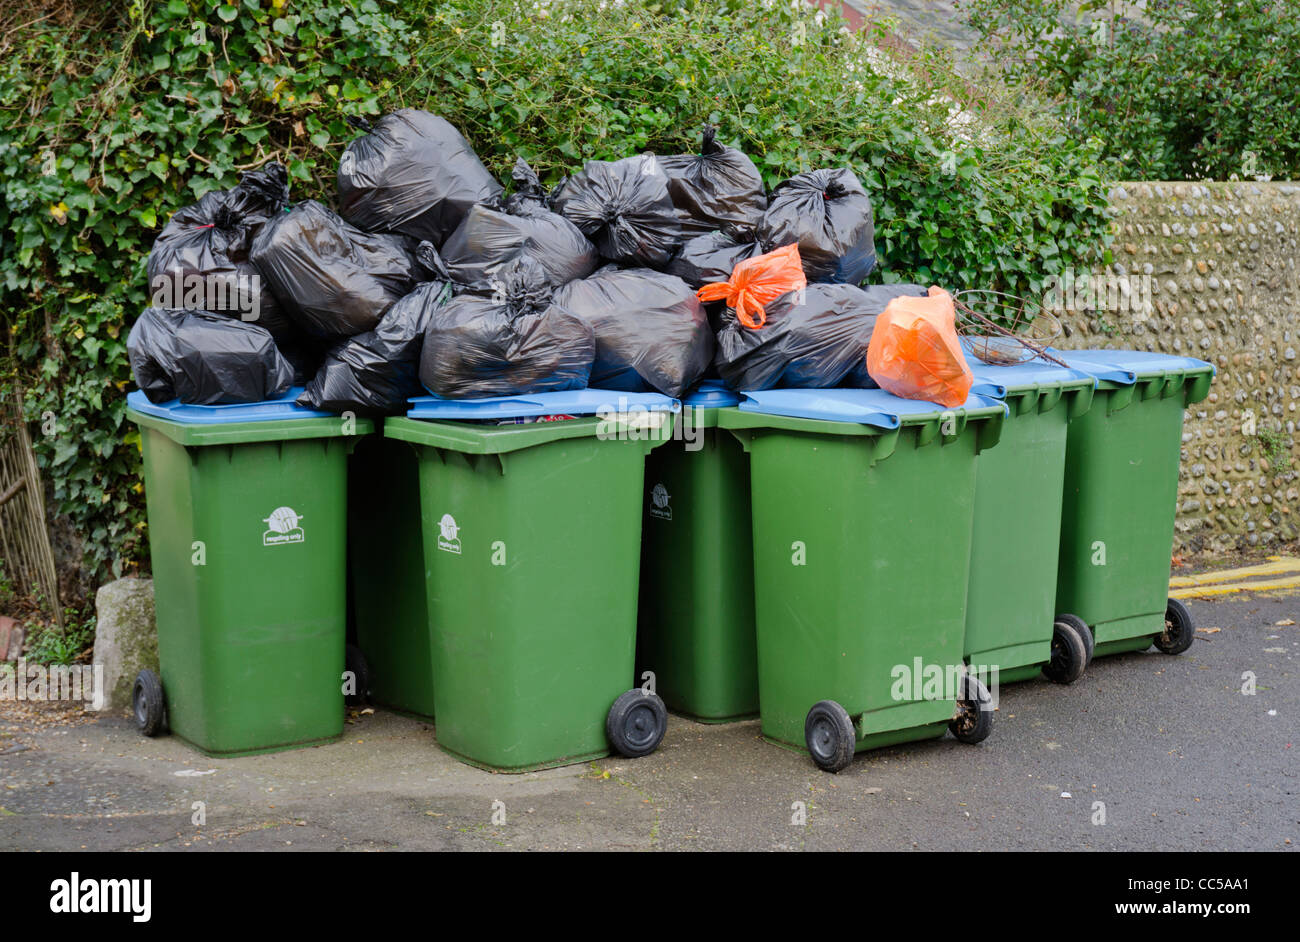 Rubbish bags and recycling wheelie bins awaiting collection in England, UK. - Stock Image